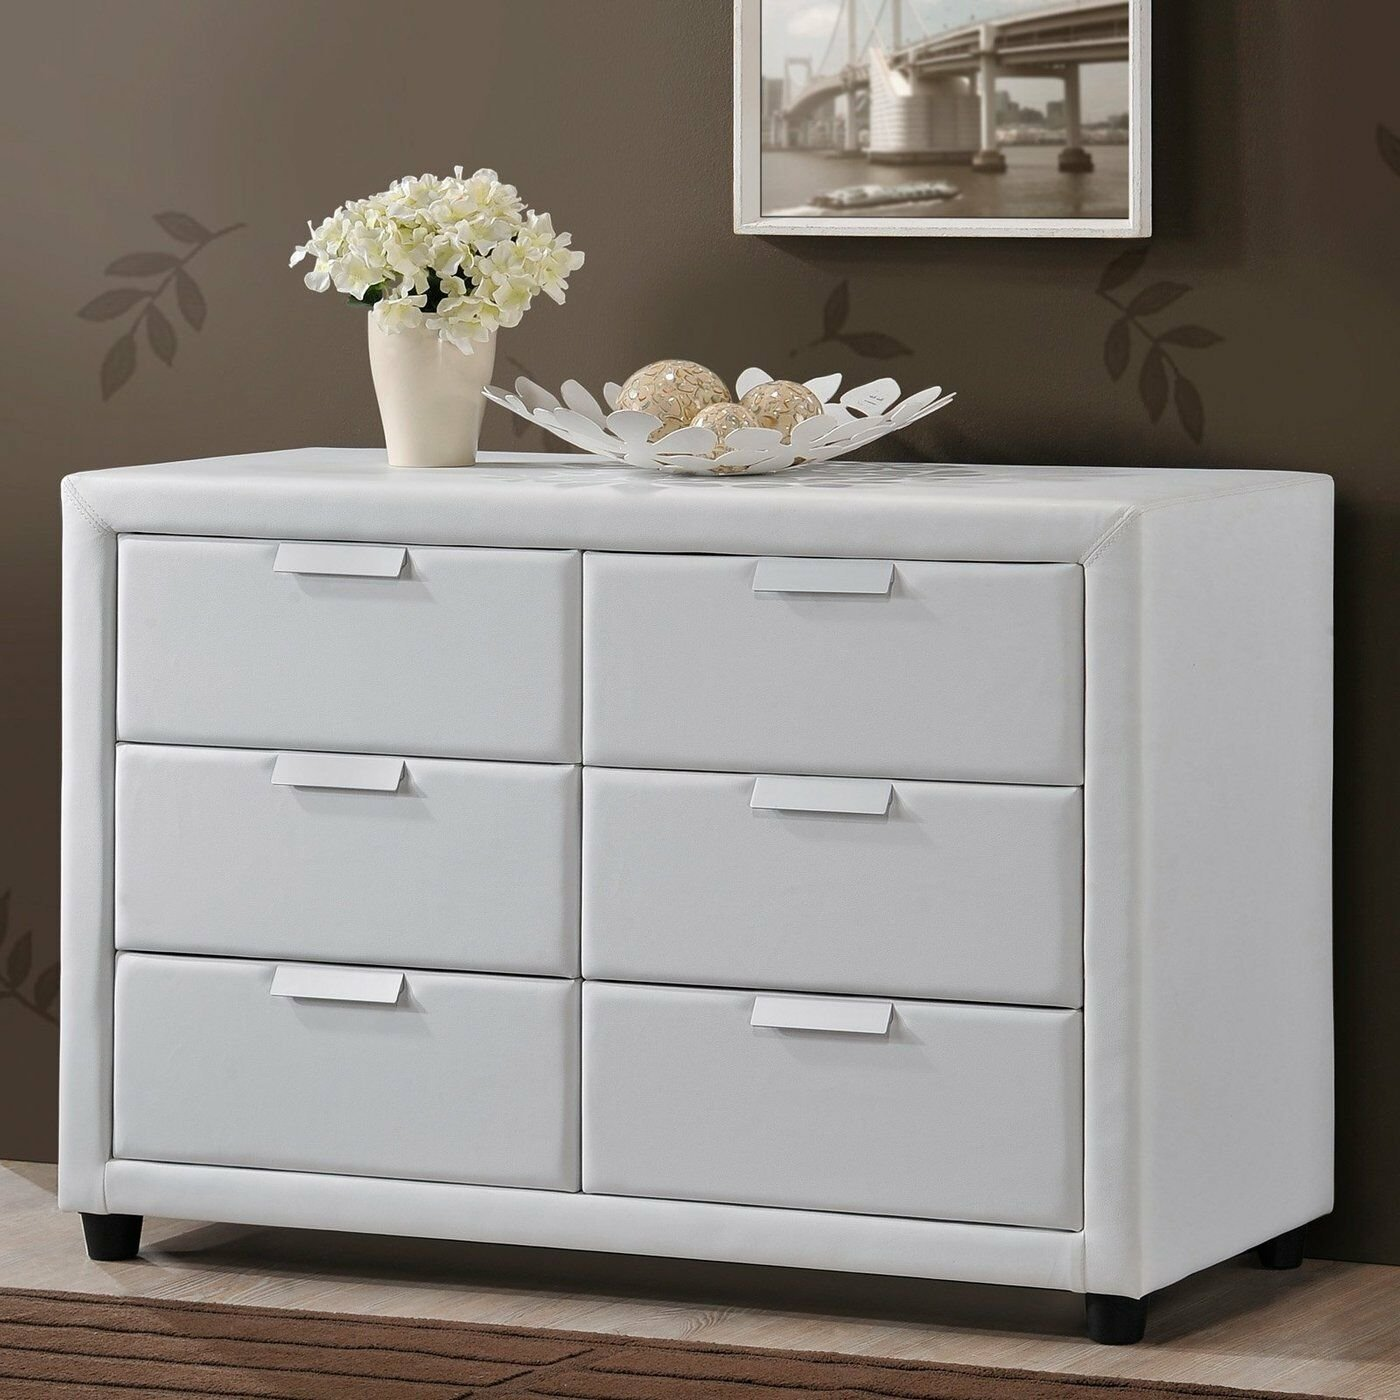 Best Bedroom Storage Dresser White Modern Chest Leather 6 With Pictures